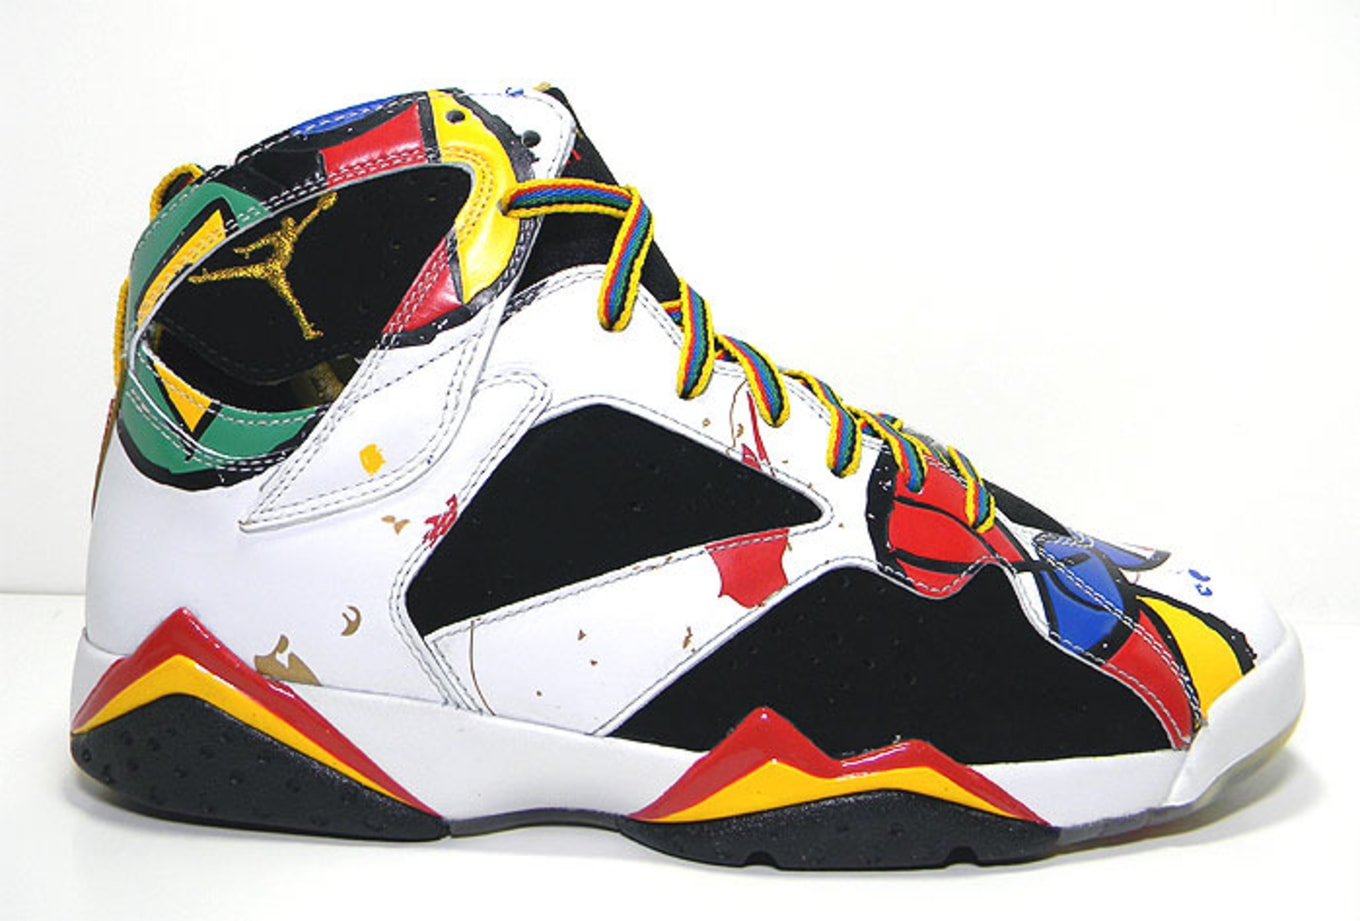 innovative design 2ddb9 eea15 Air Jordan 7  Miro